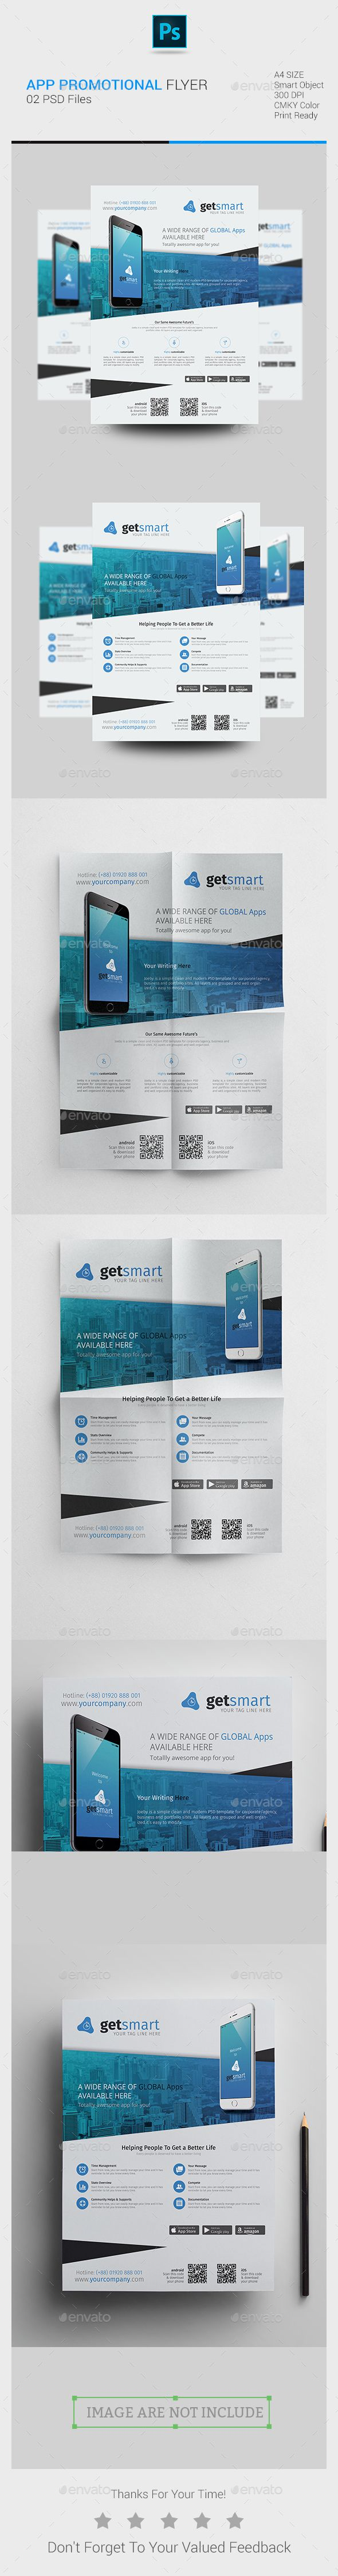 #Mobile #App Promotional #Flyer - Corporate Flyers Download here: https://graphicriver.net/item/mobile-app-promotional-flyer/19247873?ref=alena994